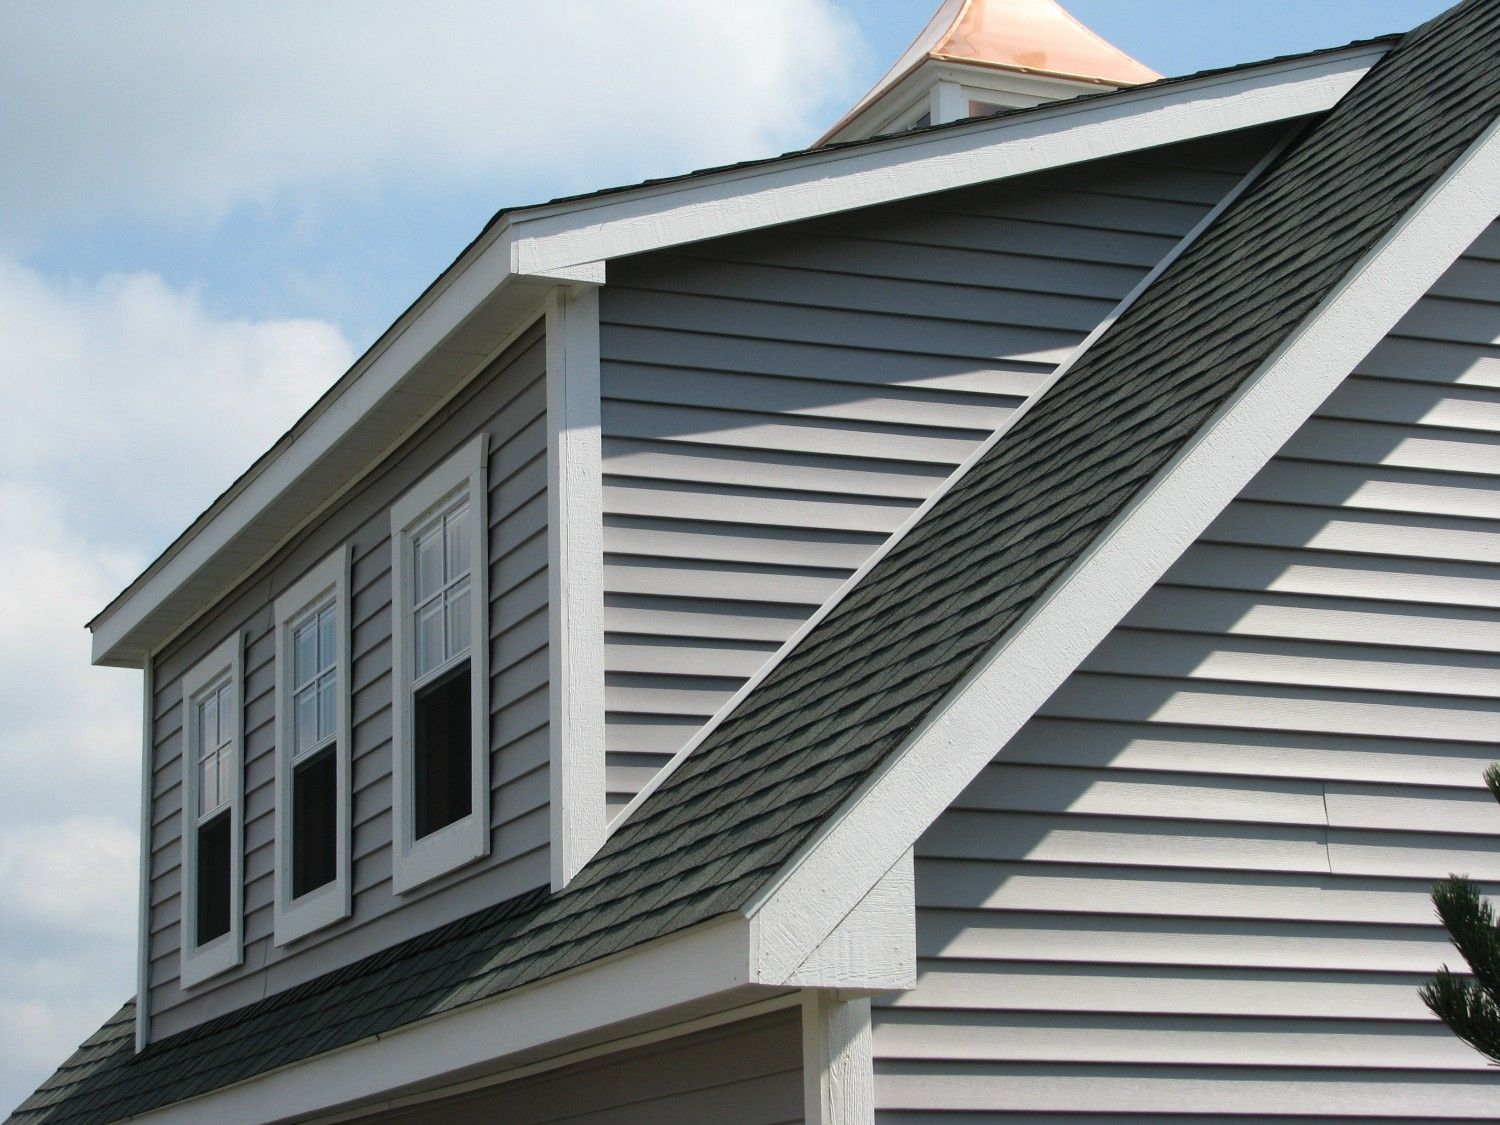 shed dormer - Google Search | Spazi sottotetto | Pinterest ...